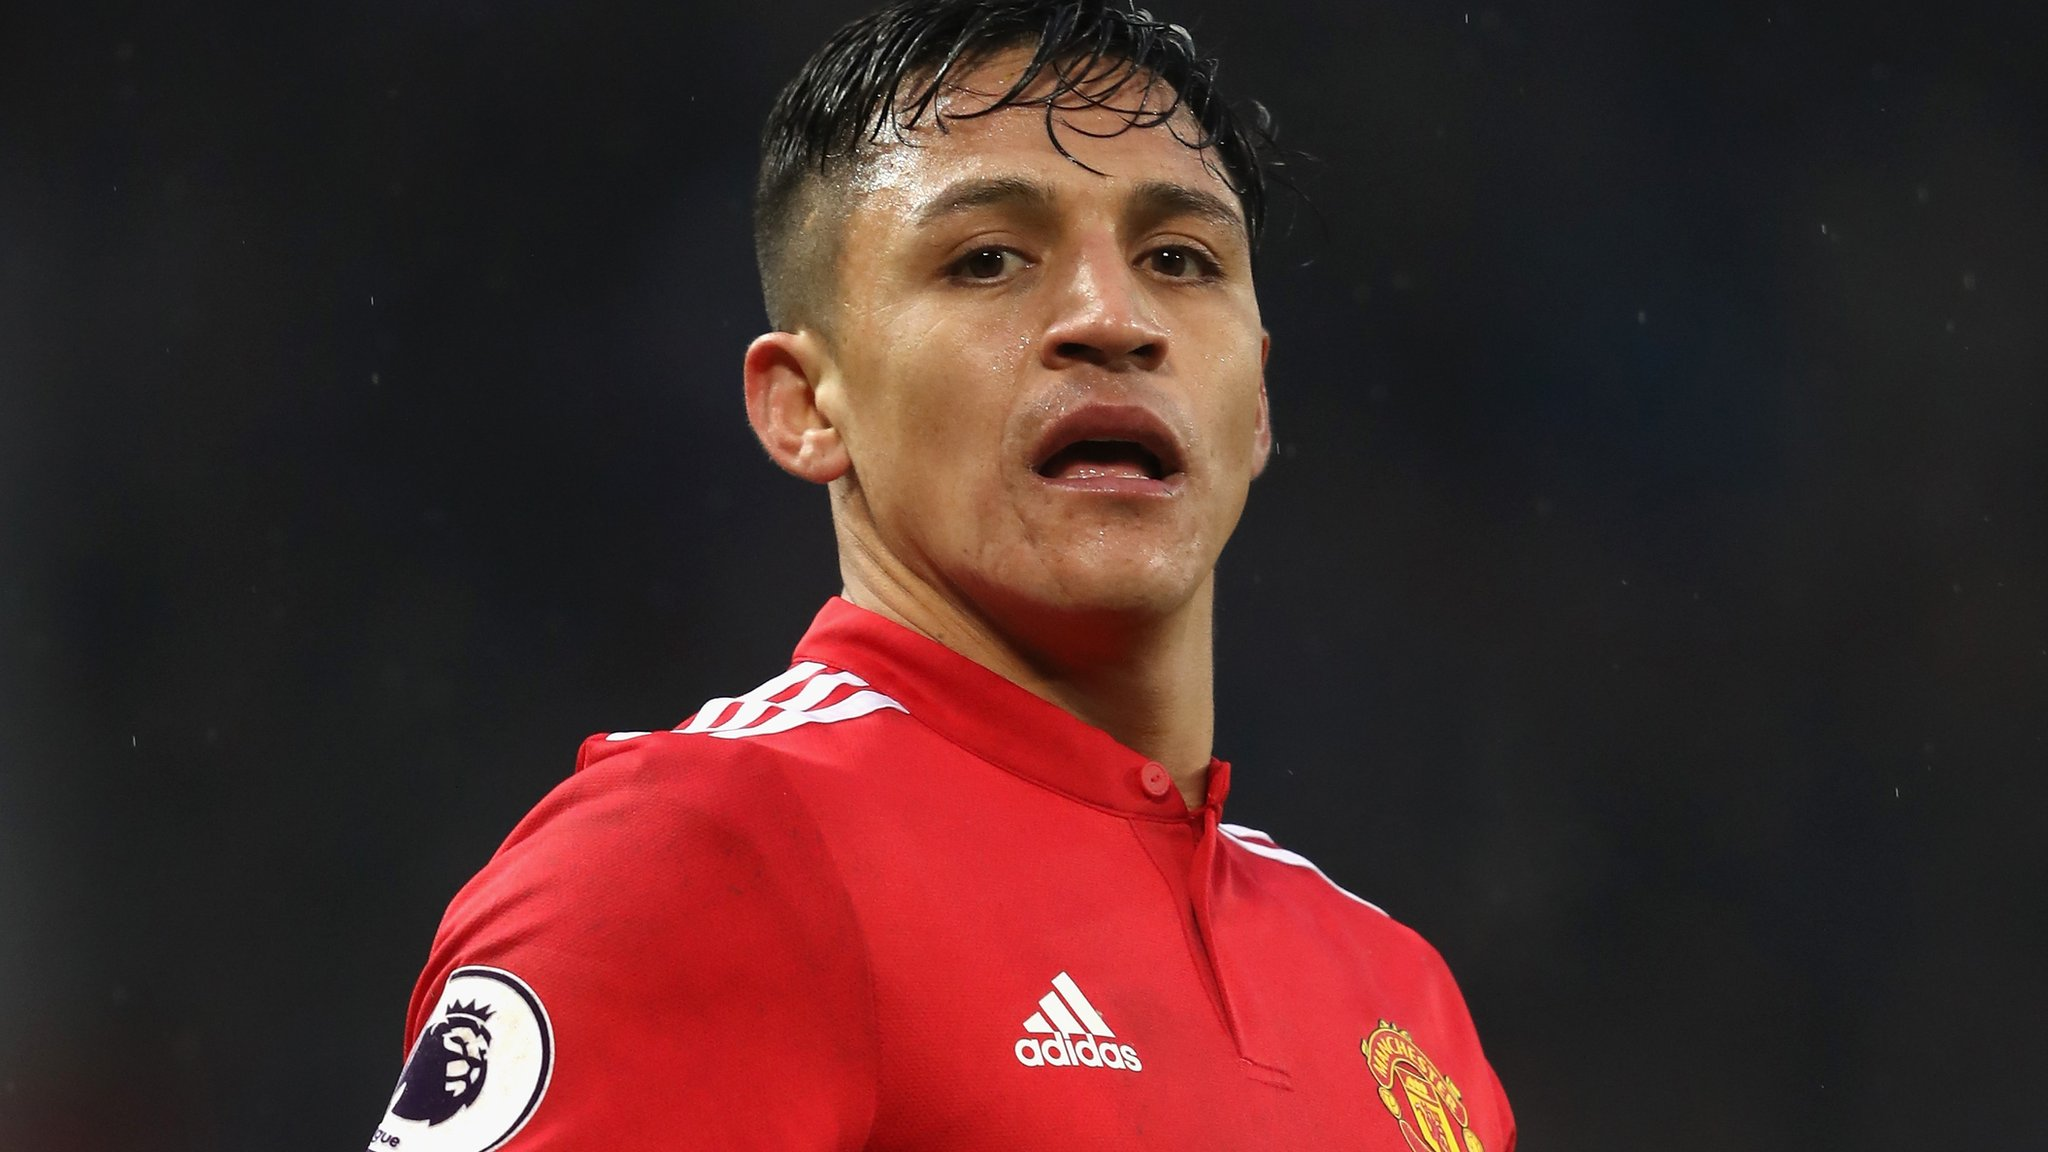 Alexis Sanchez: Manchester United forward accepts deal for tax fraud